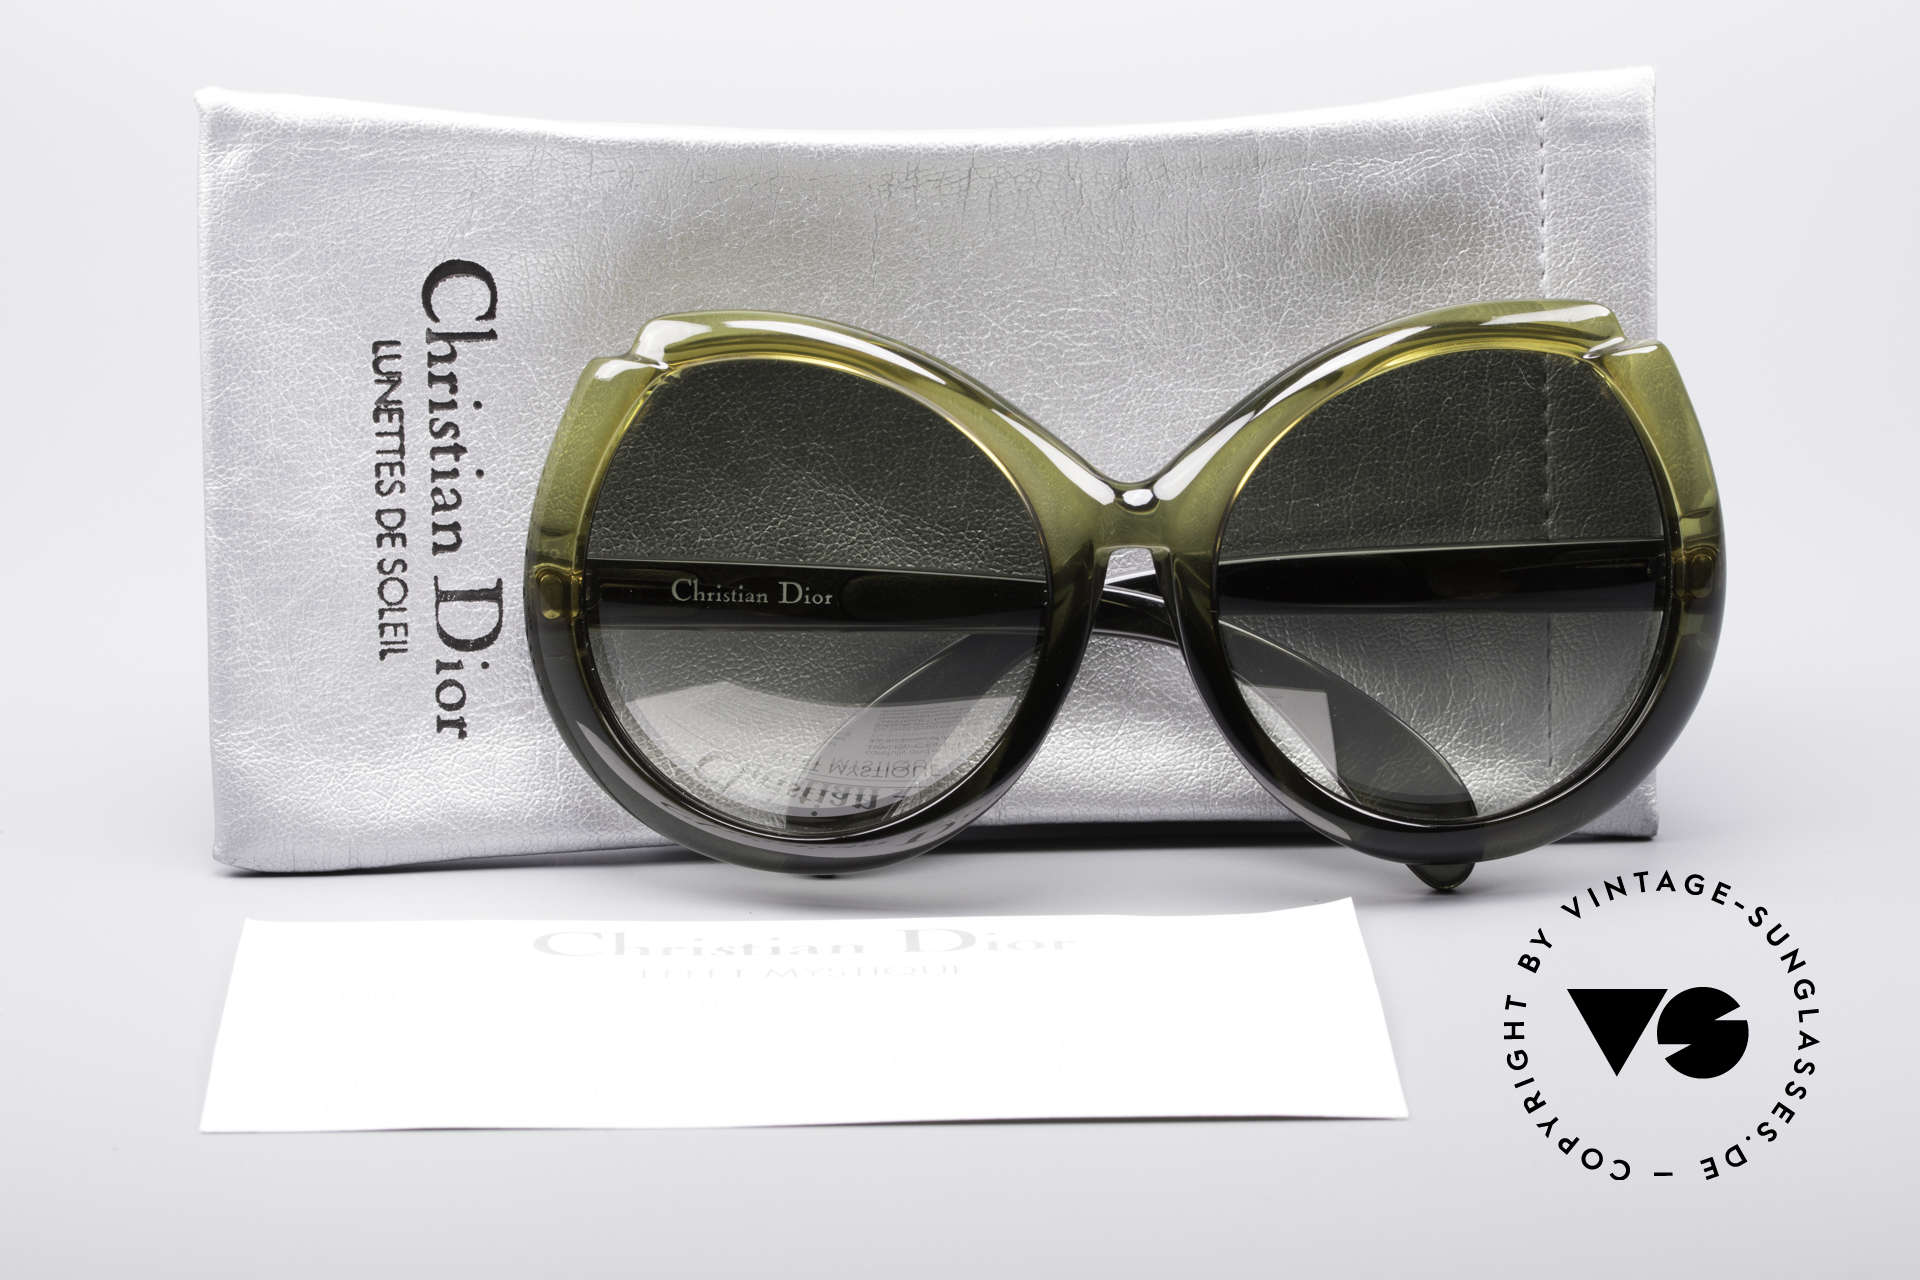 Christian Dior D11 Huge 70's Shades, terrific colouring (gradient from yellowish to greenish), Made for Women